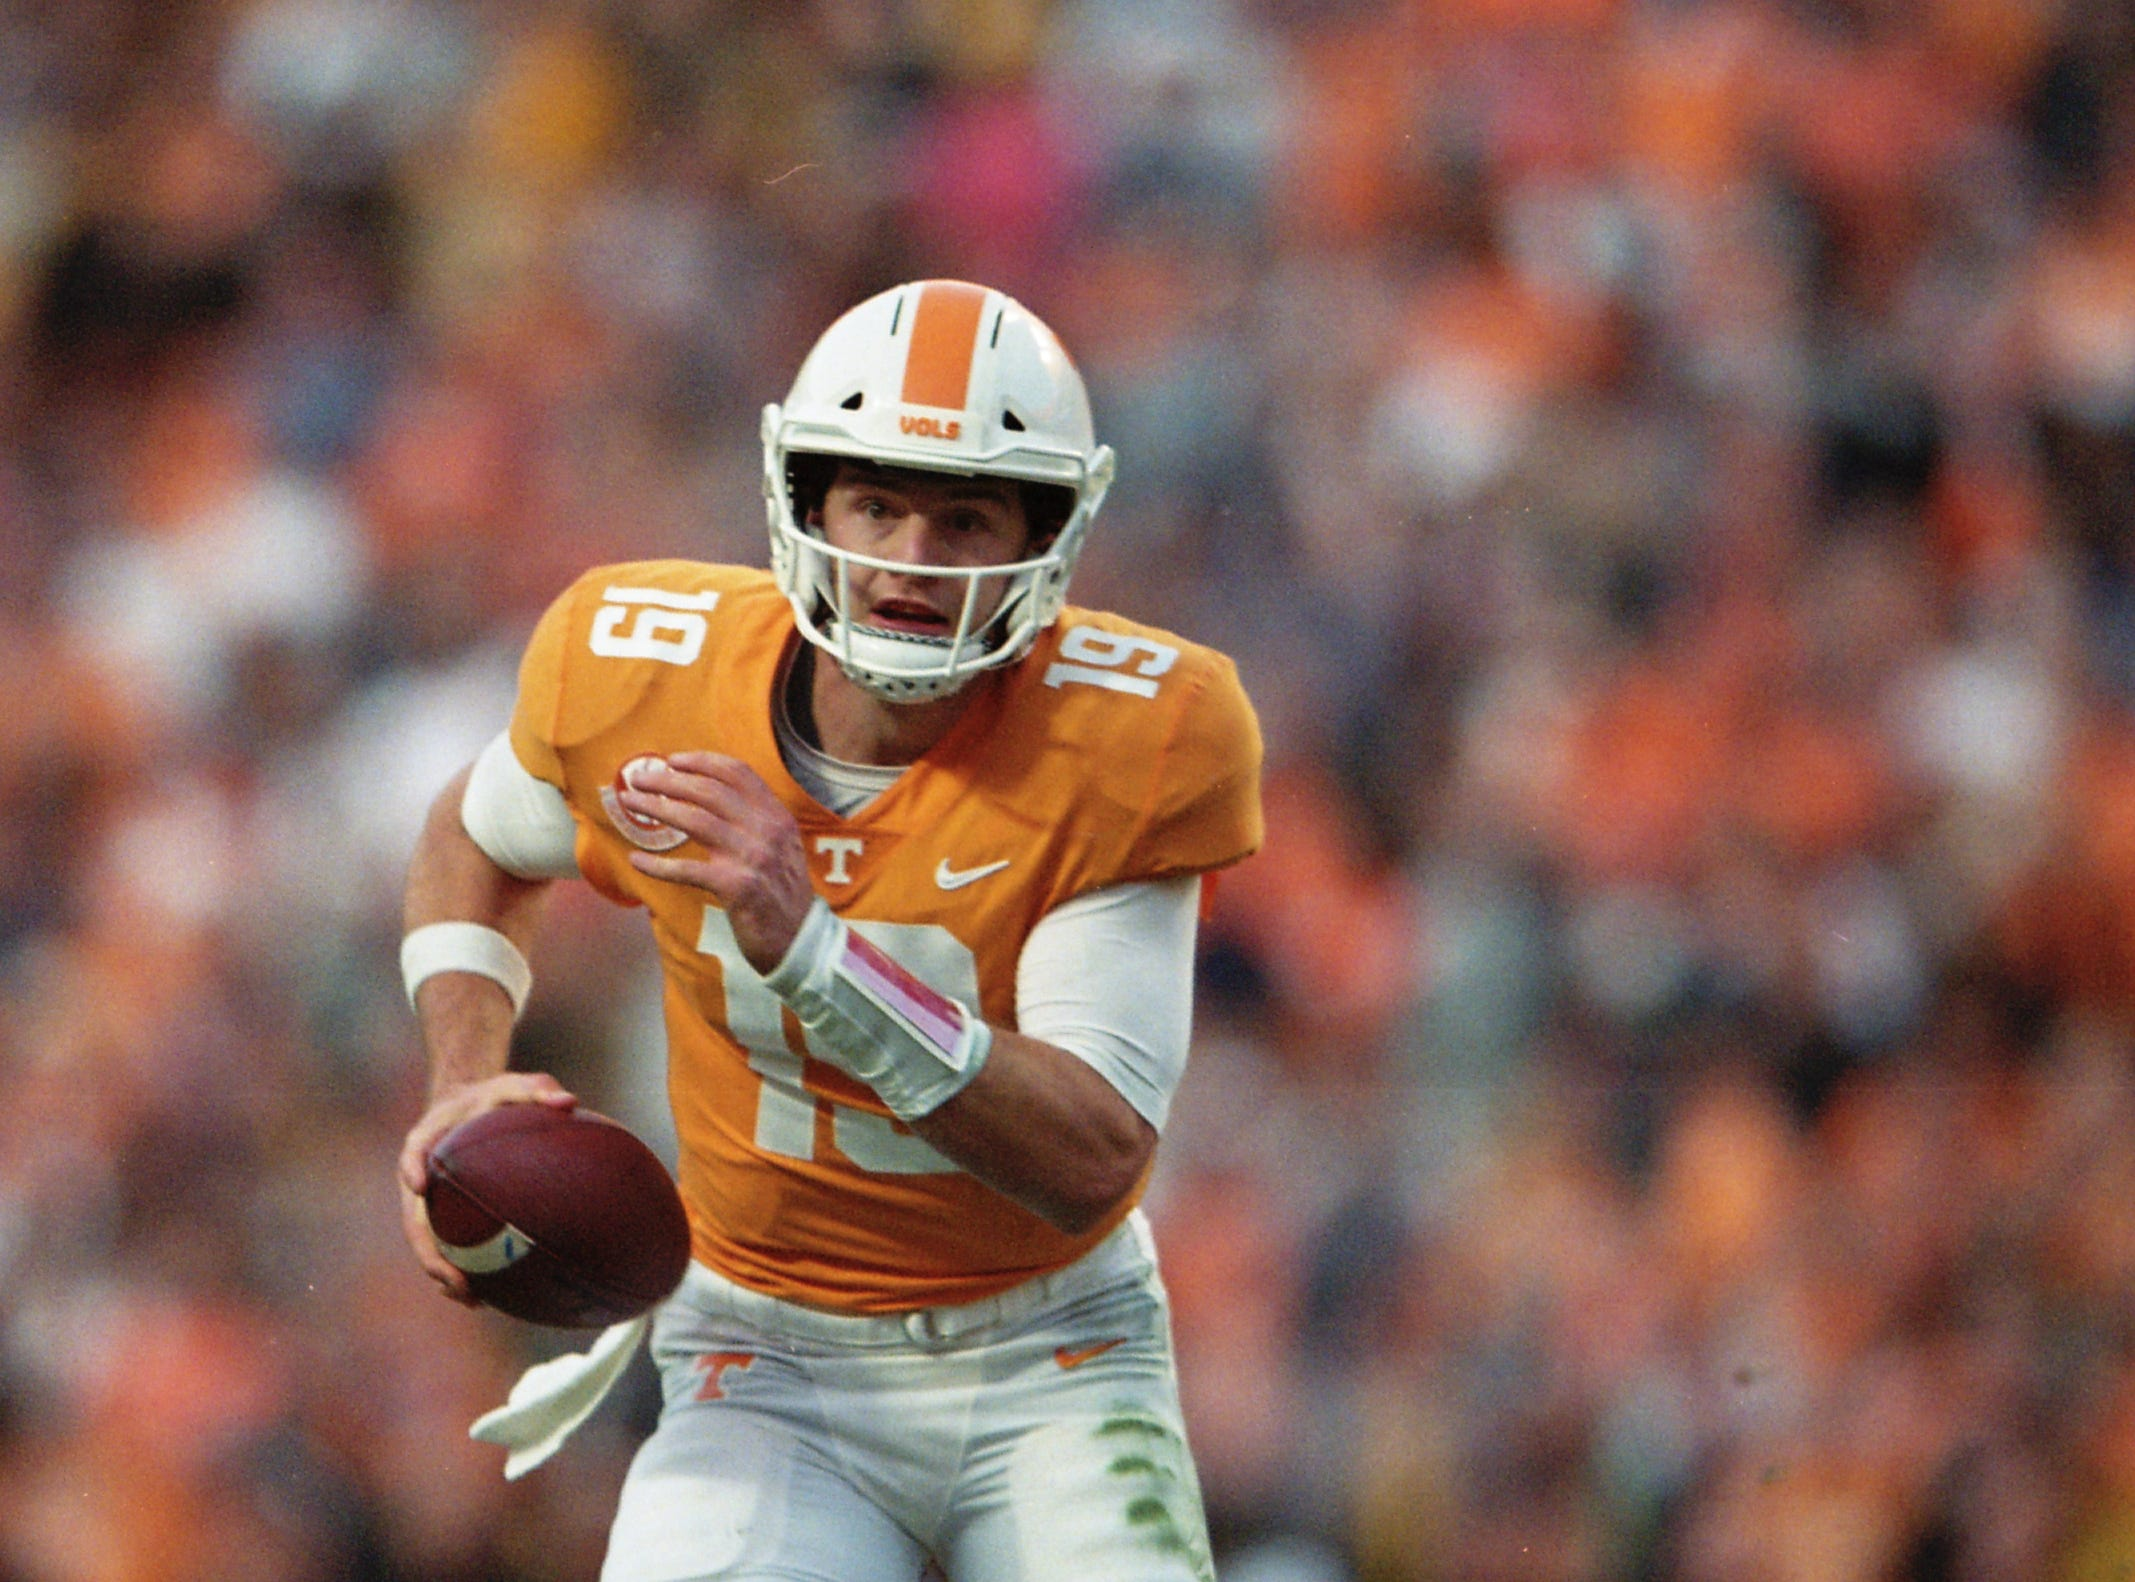 Tennessee quarterback Keller Chryst (19) looks to pass during a game between Tennessee and Missouri at Neyland Stadium in Knoxville, Tennessee on Saturday, November 17, 2018.